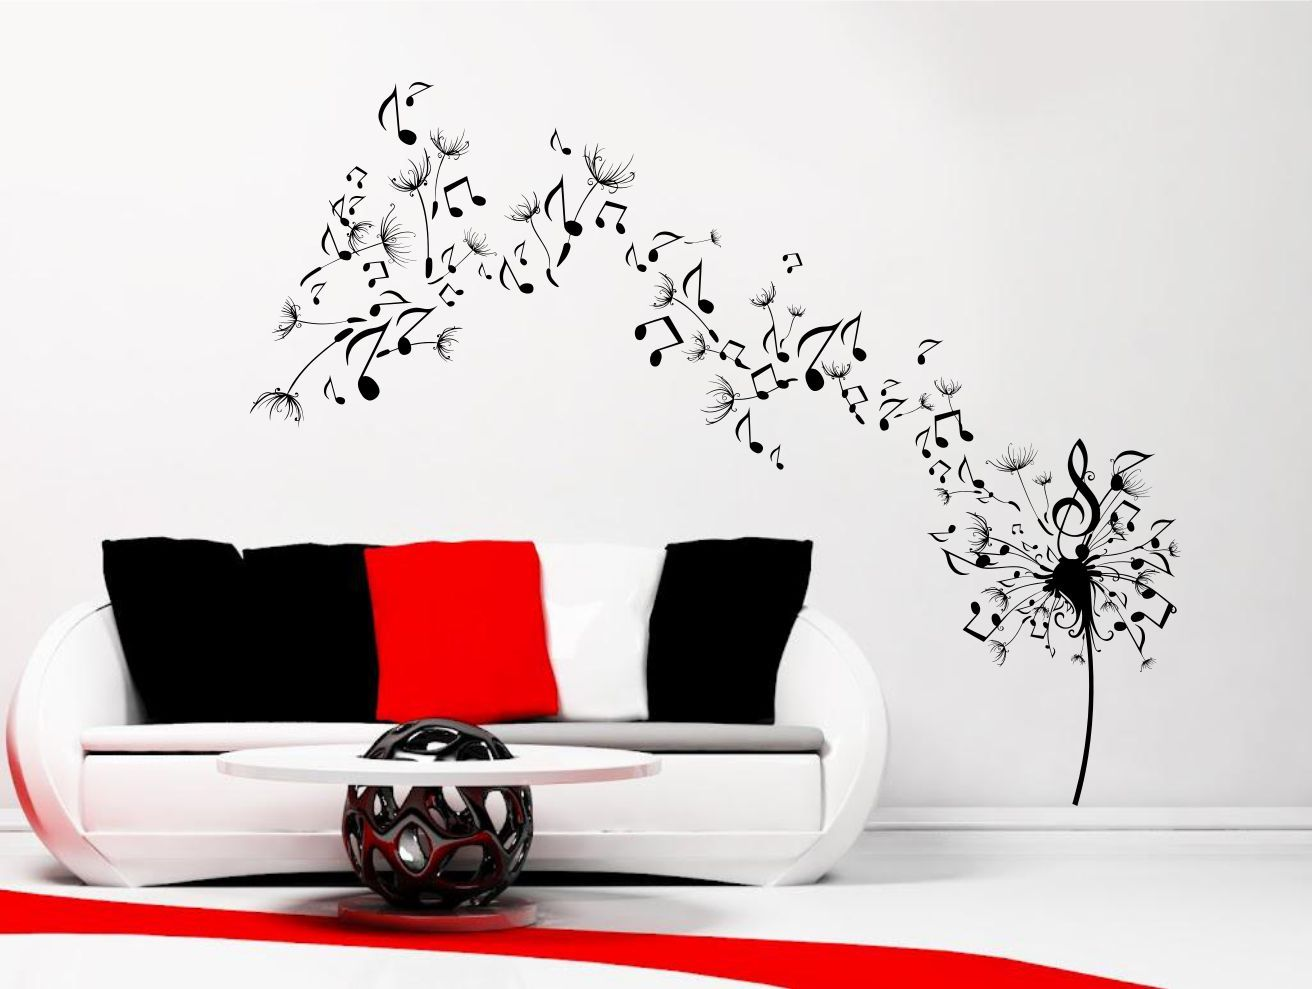 Dandelion clock seeds music note wall decal sticker transfer dandelion clock seeds music note wall decal sticker amipublicfo Images